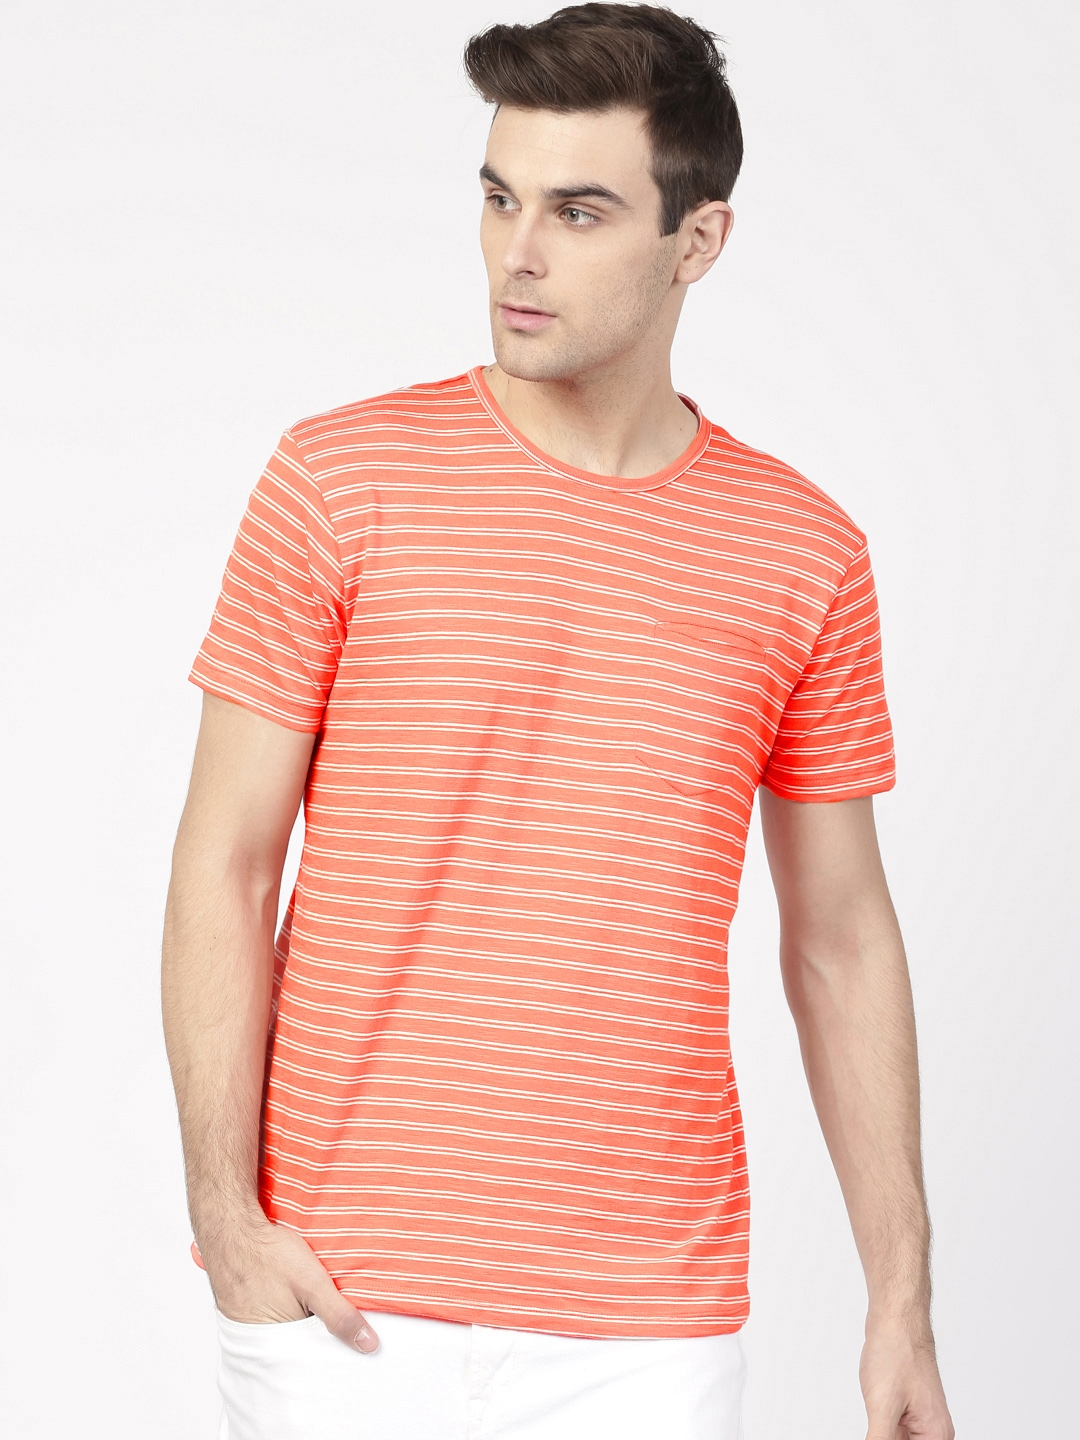 4b99fb6f27 Buy Ether Men Orange & White Lightweight Striped Round Neck T Shirt -  Tshirts for Men 1704551 | Myntra